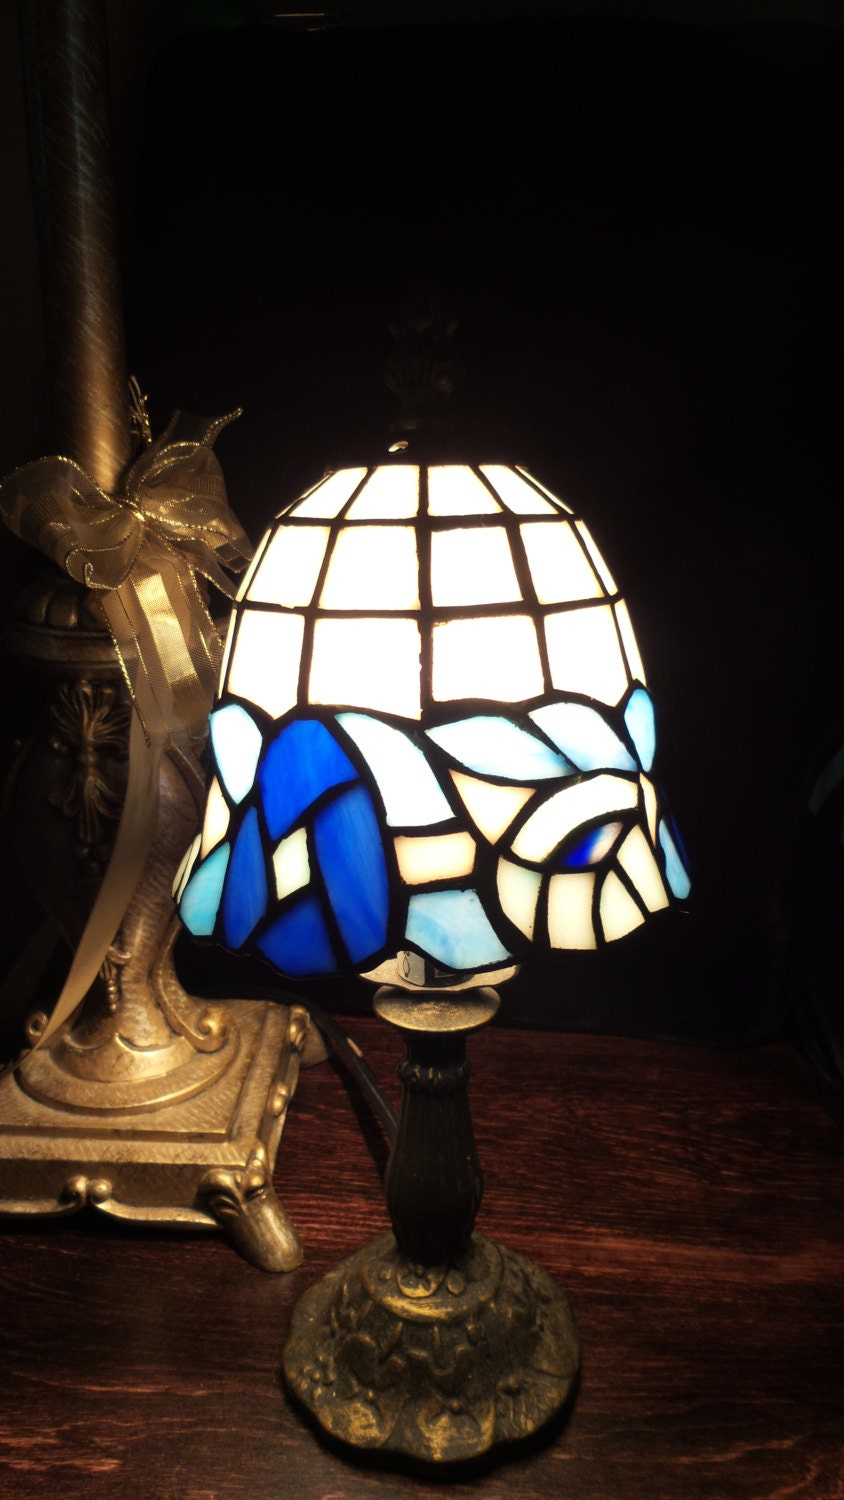 stained glass tiffany style lamp shade. Black Bedroom Furniture Sets. Home Design Ideas